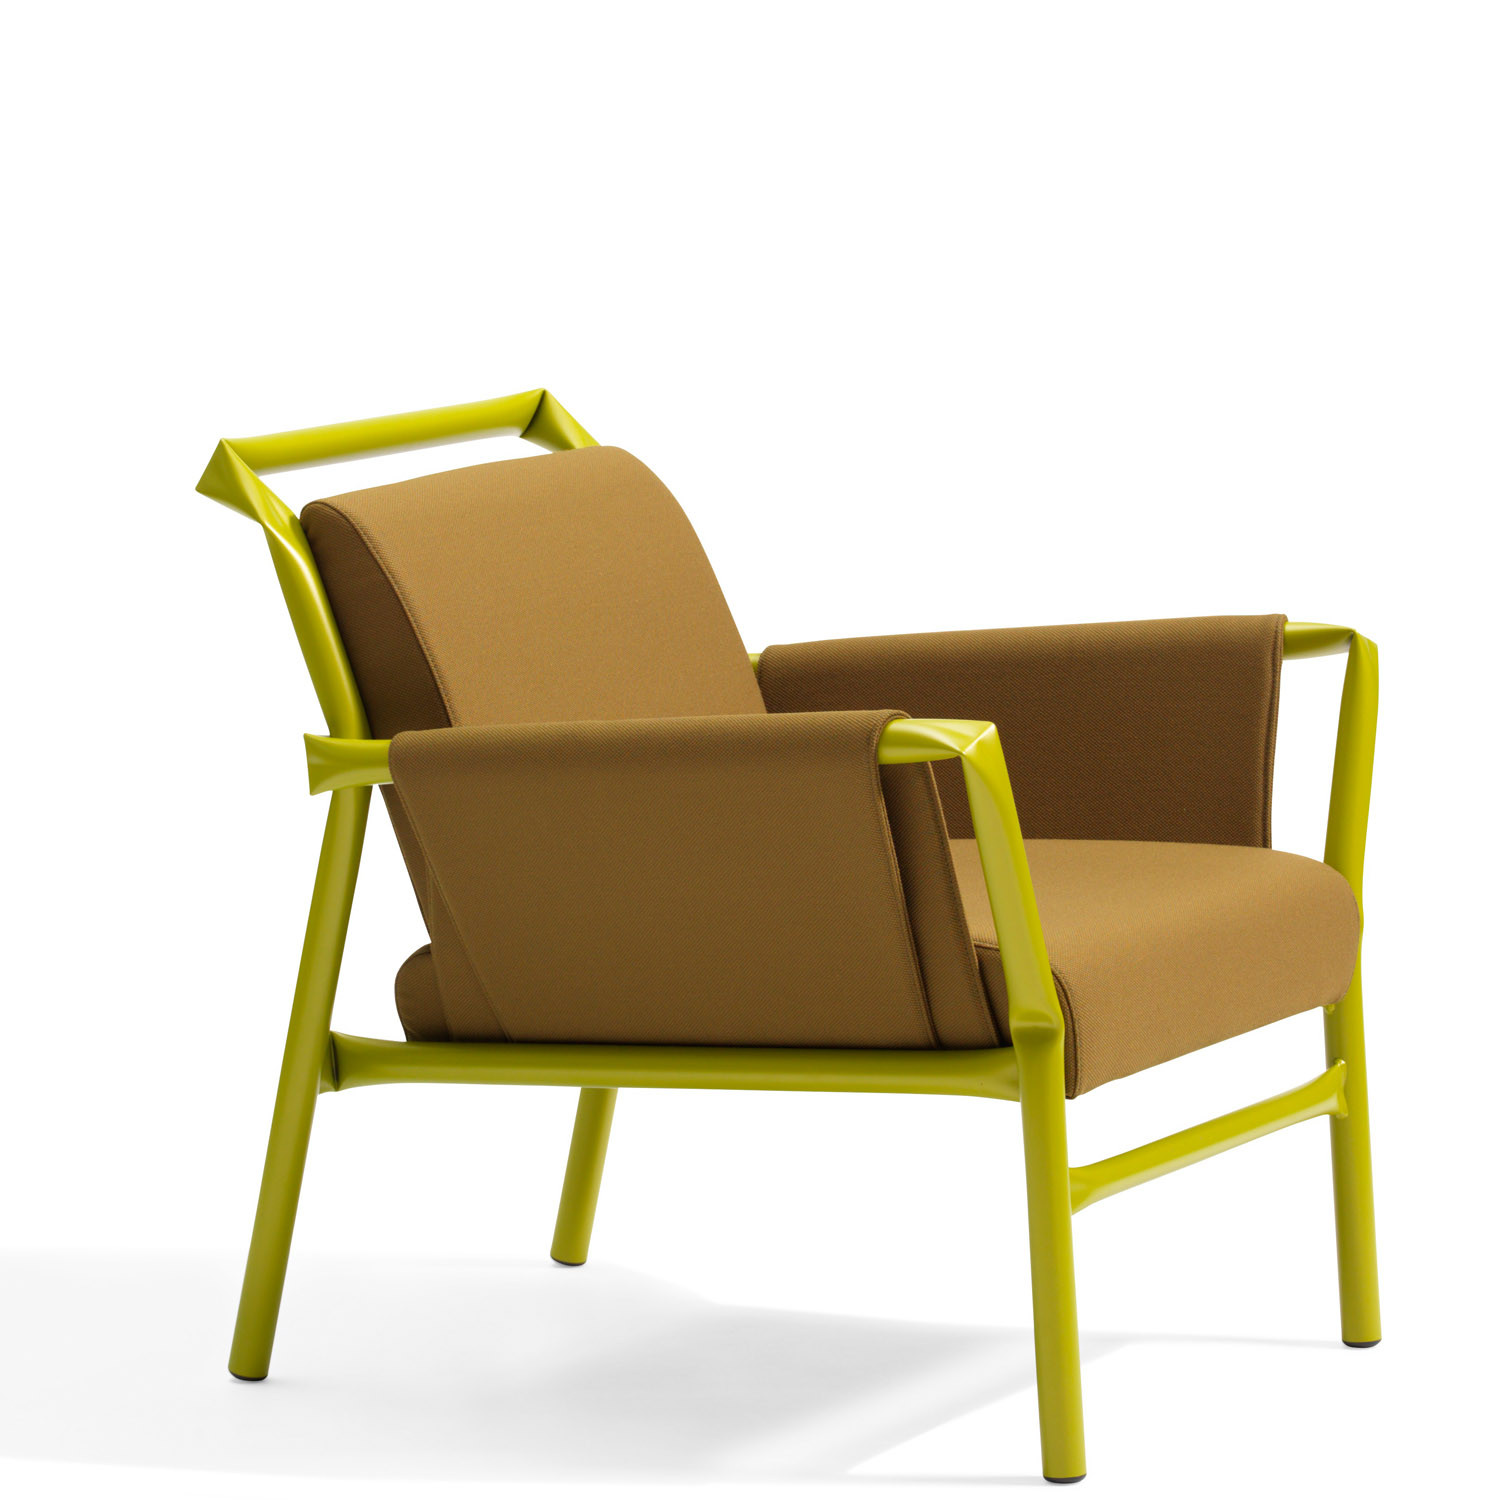 Superkink Lounge Chair S26